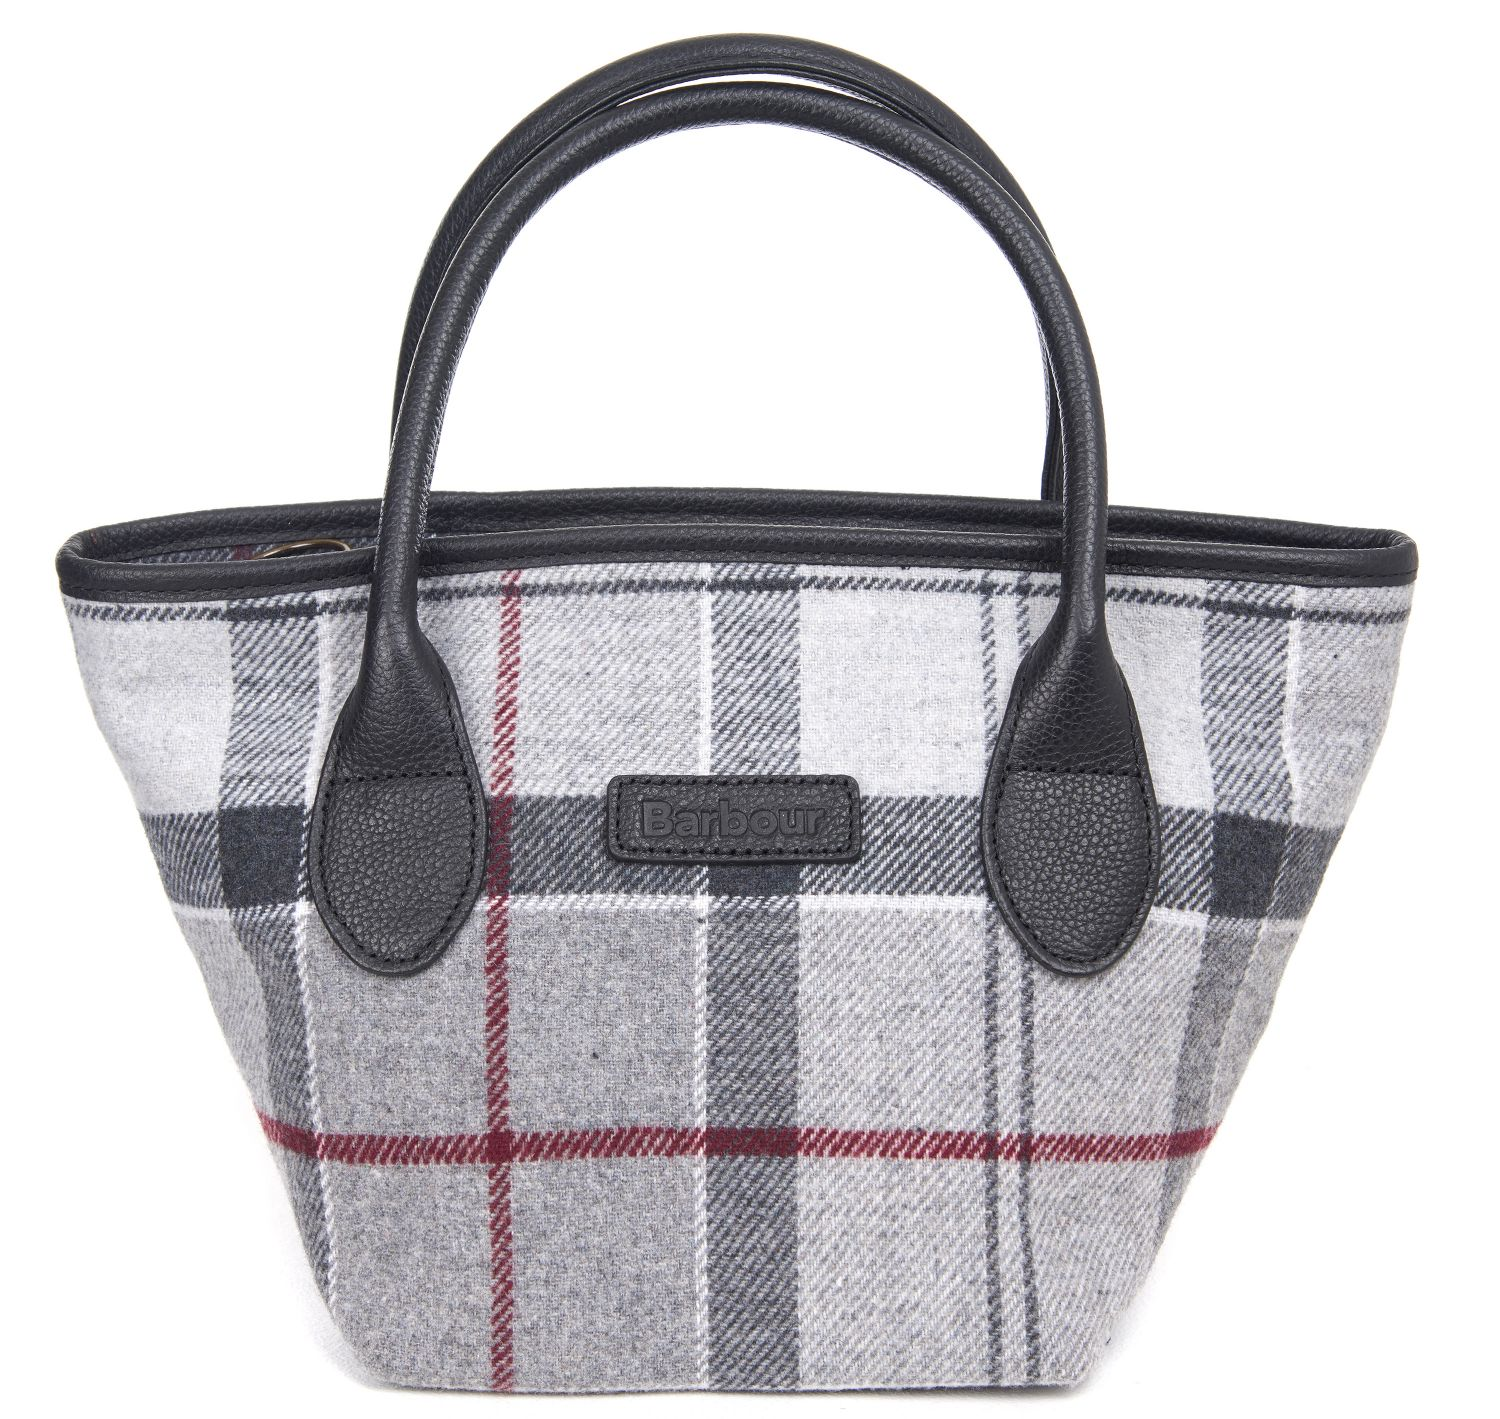 BarbourTartan Mini Classic Grey Barbour Lifestyle: From the Winter Tartan Collection